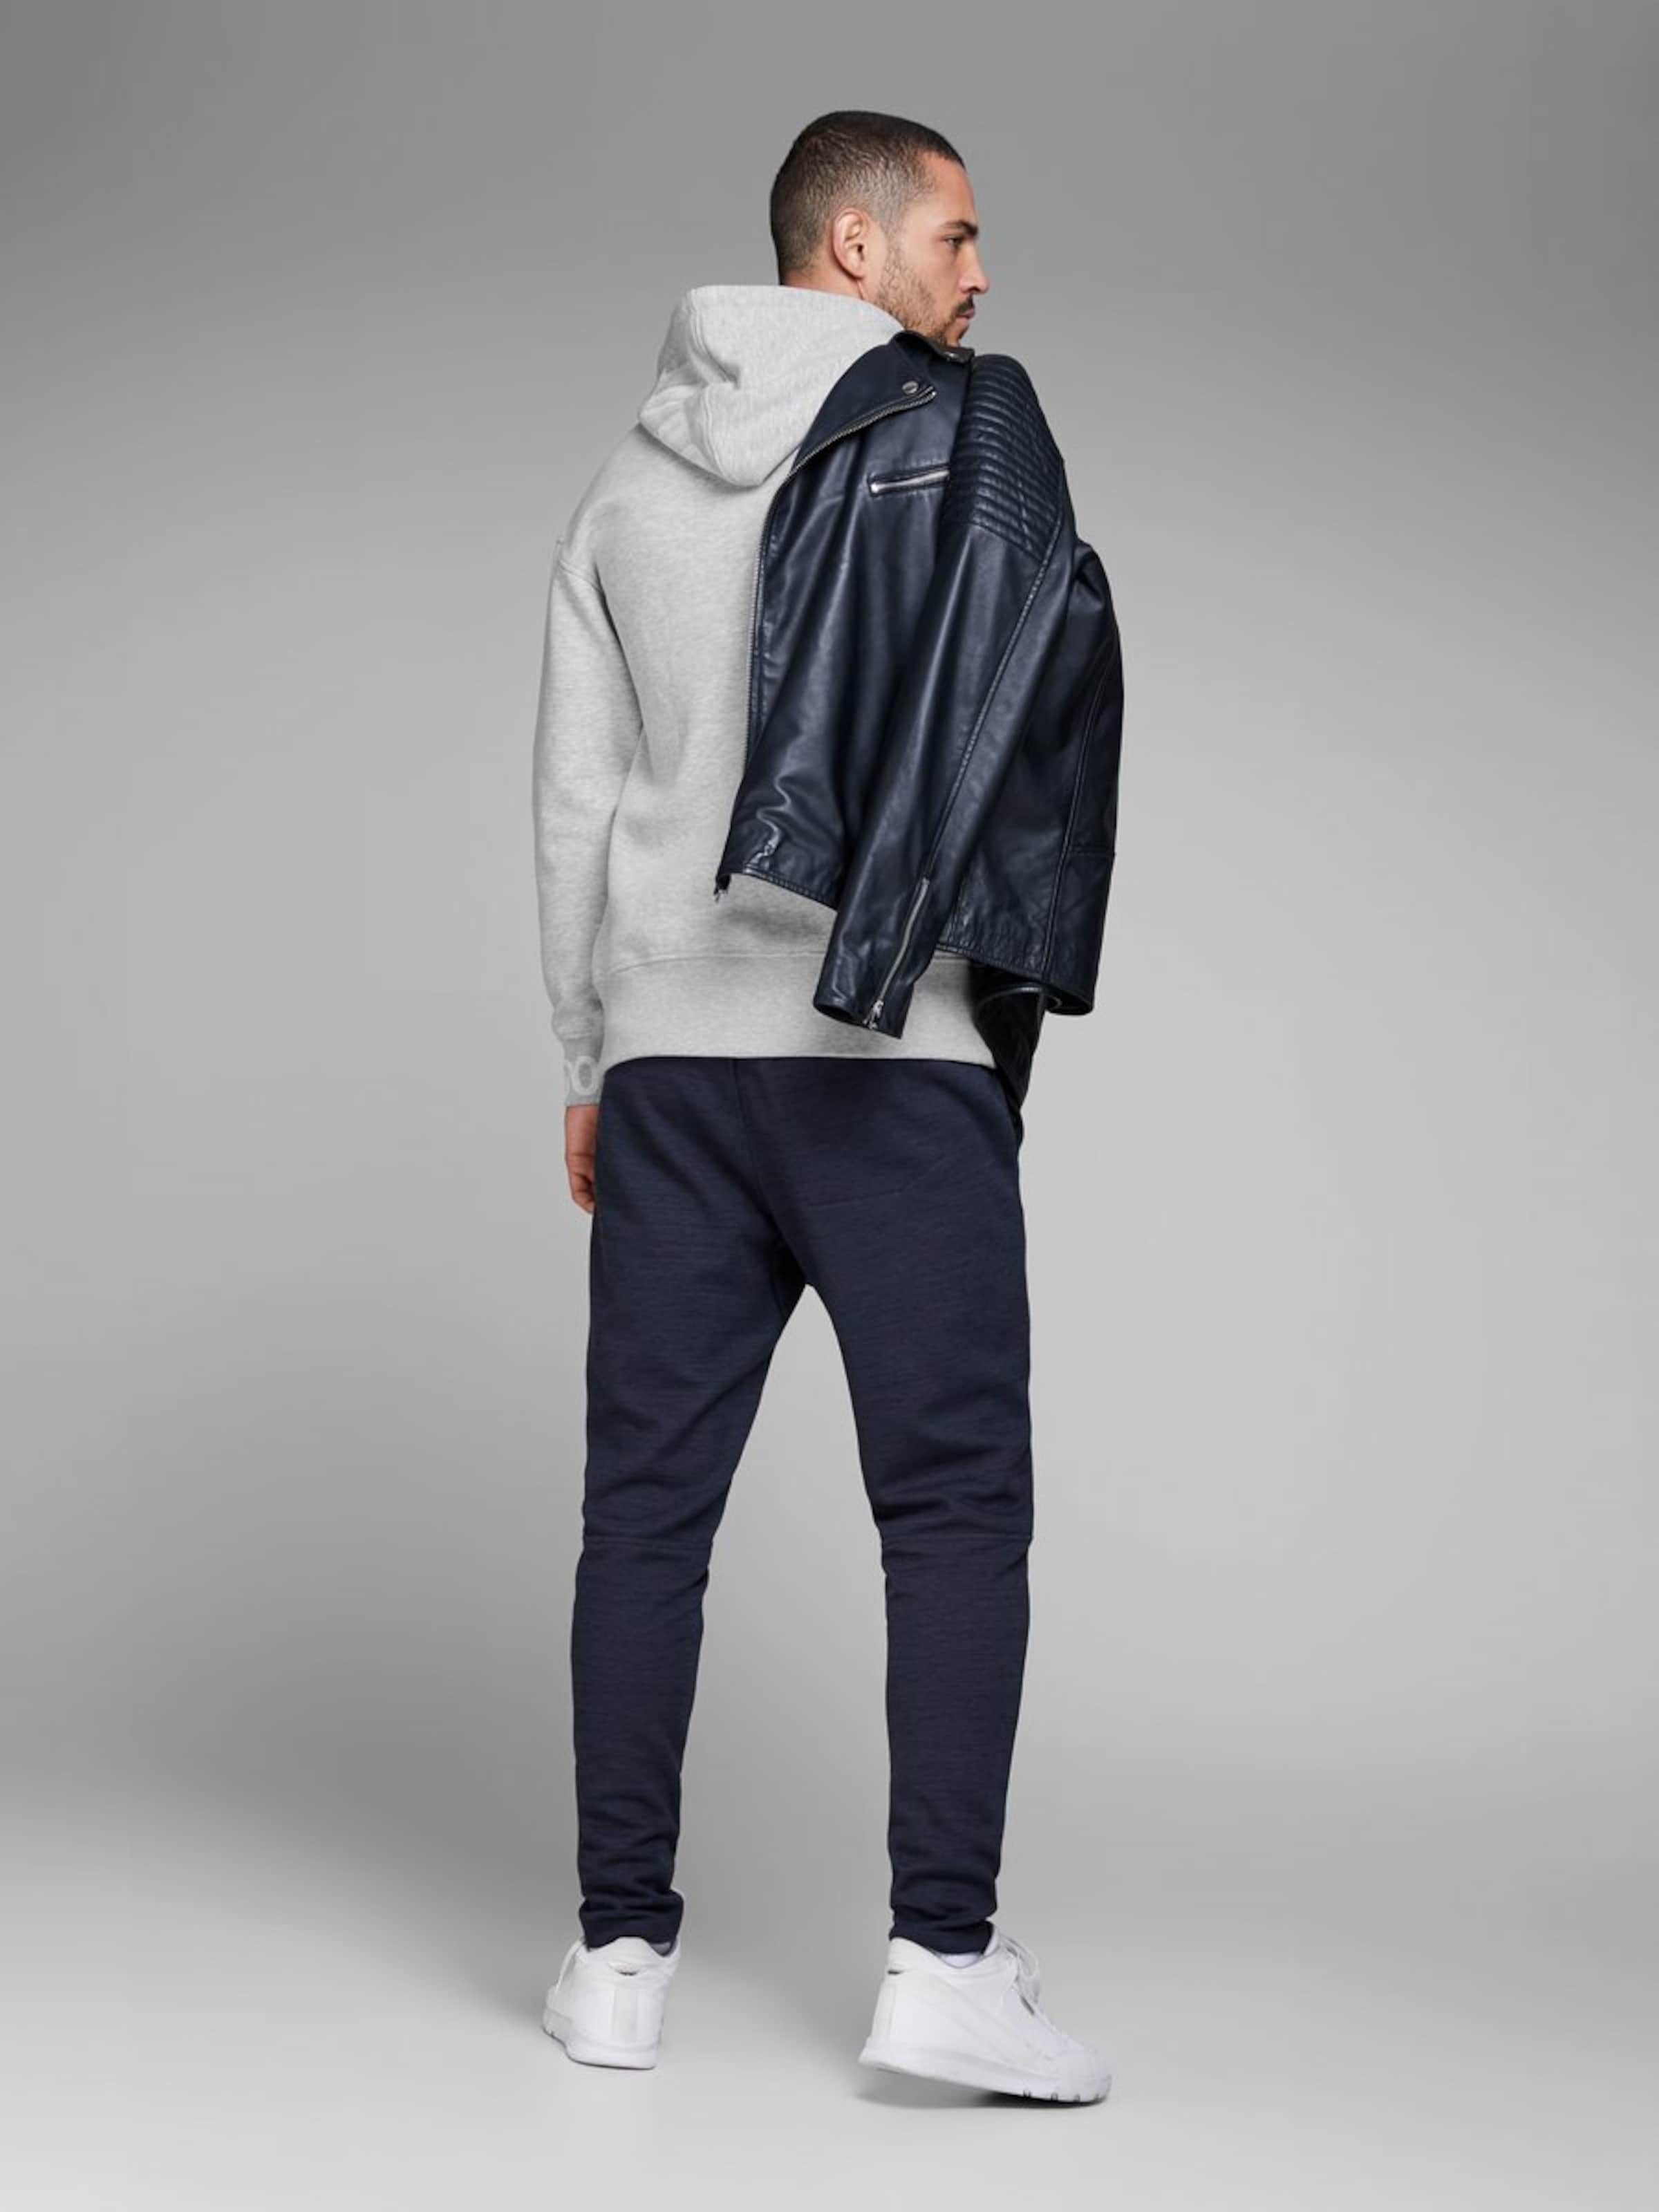 Jackamp; Gris shirt Sweat En Jones lJFK3u1cT